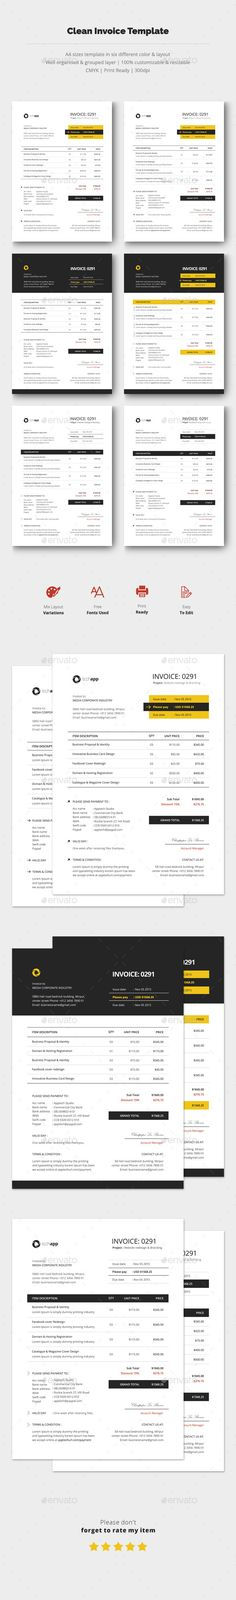 Clean Invoice Template PSD #design Download: http://graphicriver.net/item/clean-invoice-template-vol3/14297178?ref=ksioks